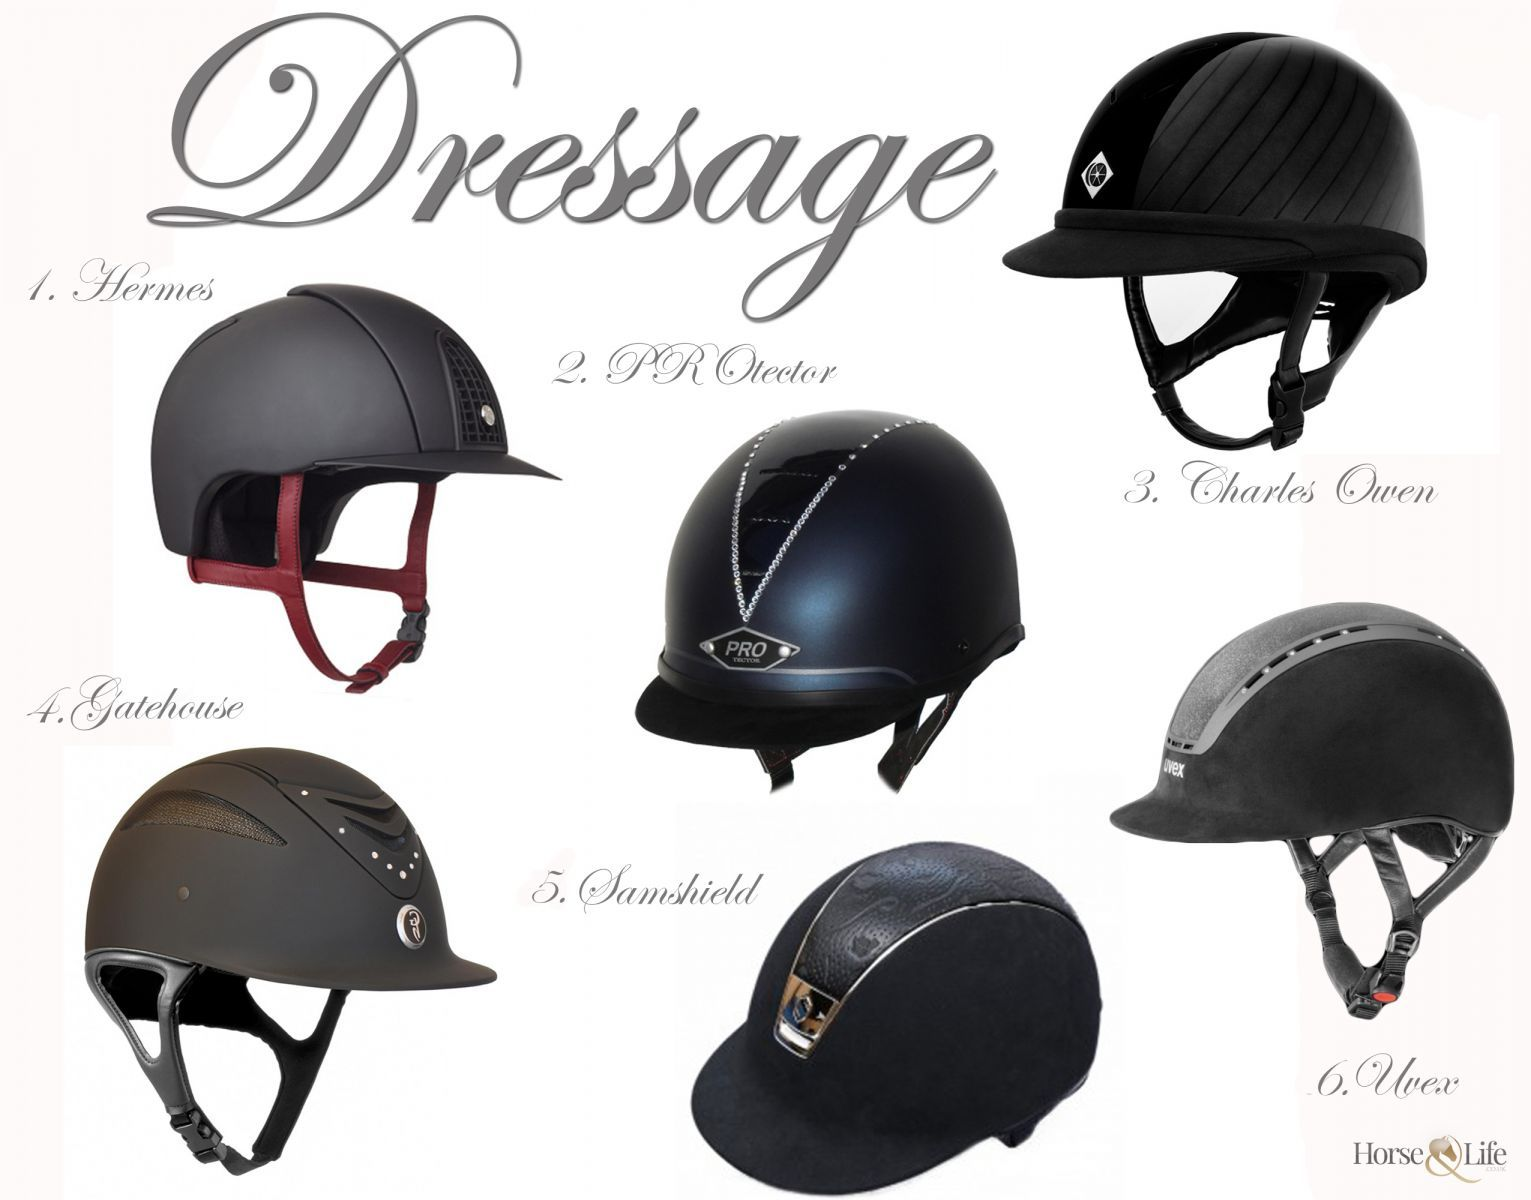 Dressage Helmets For International Helmet Awareness Day Horse